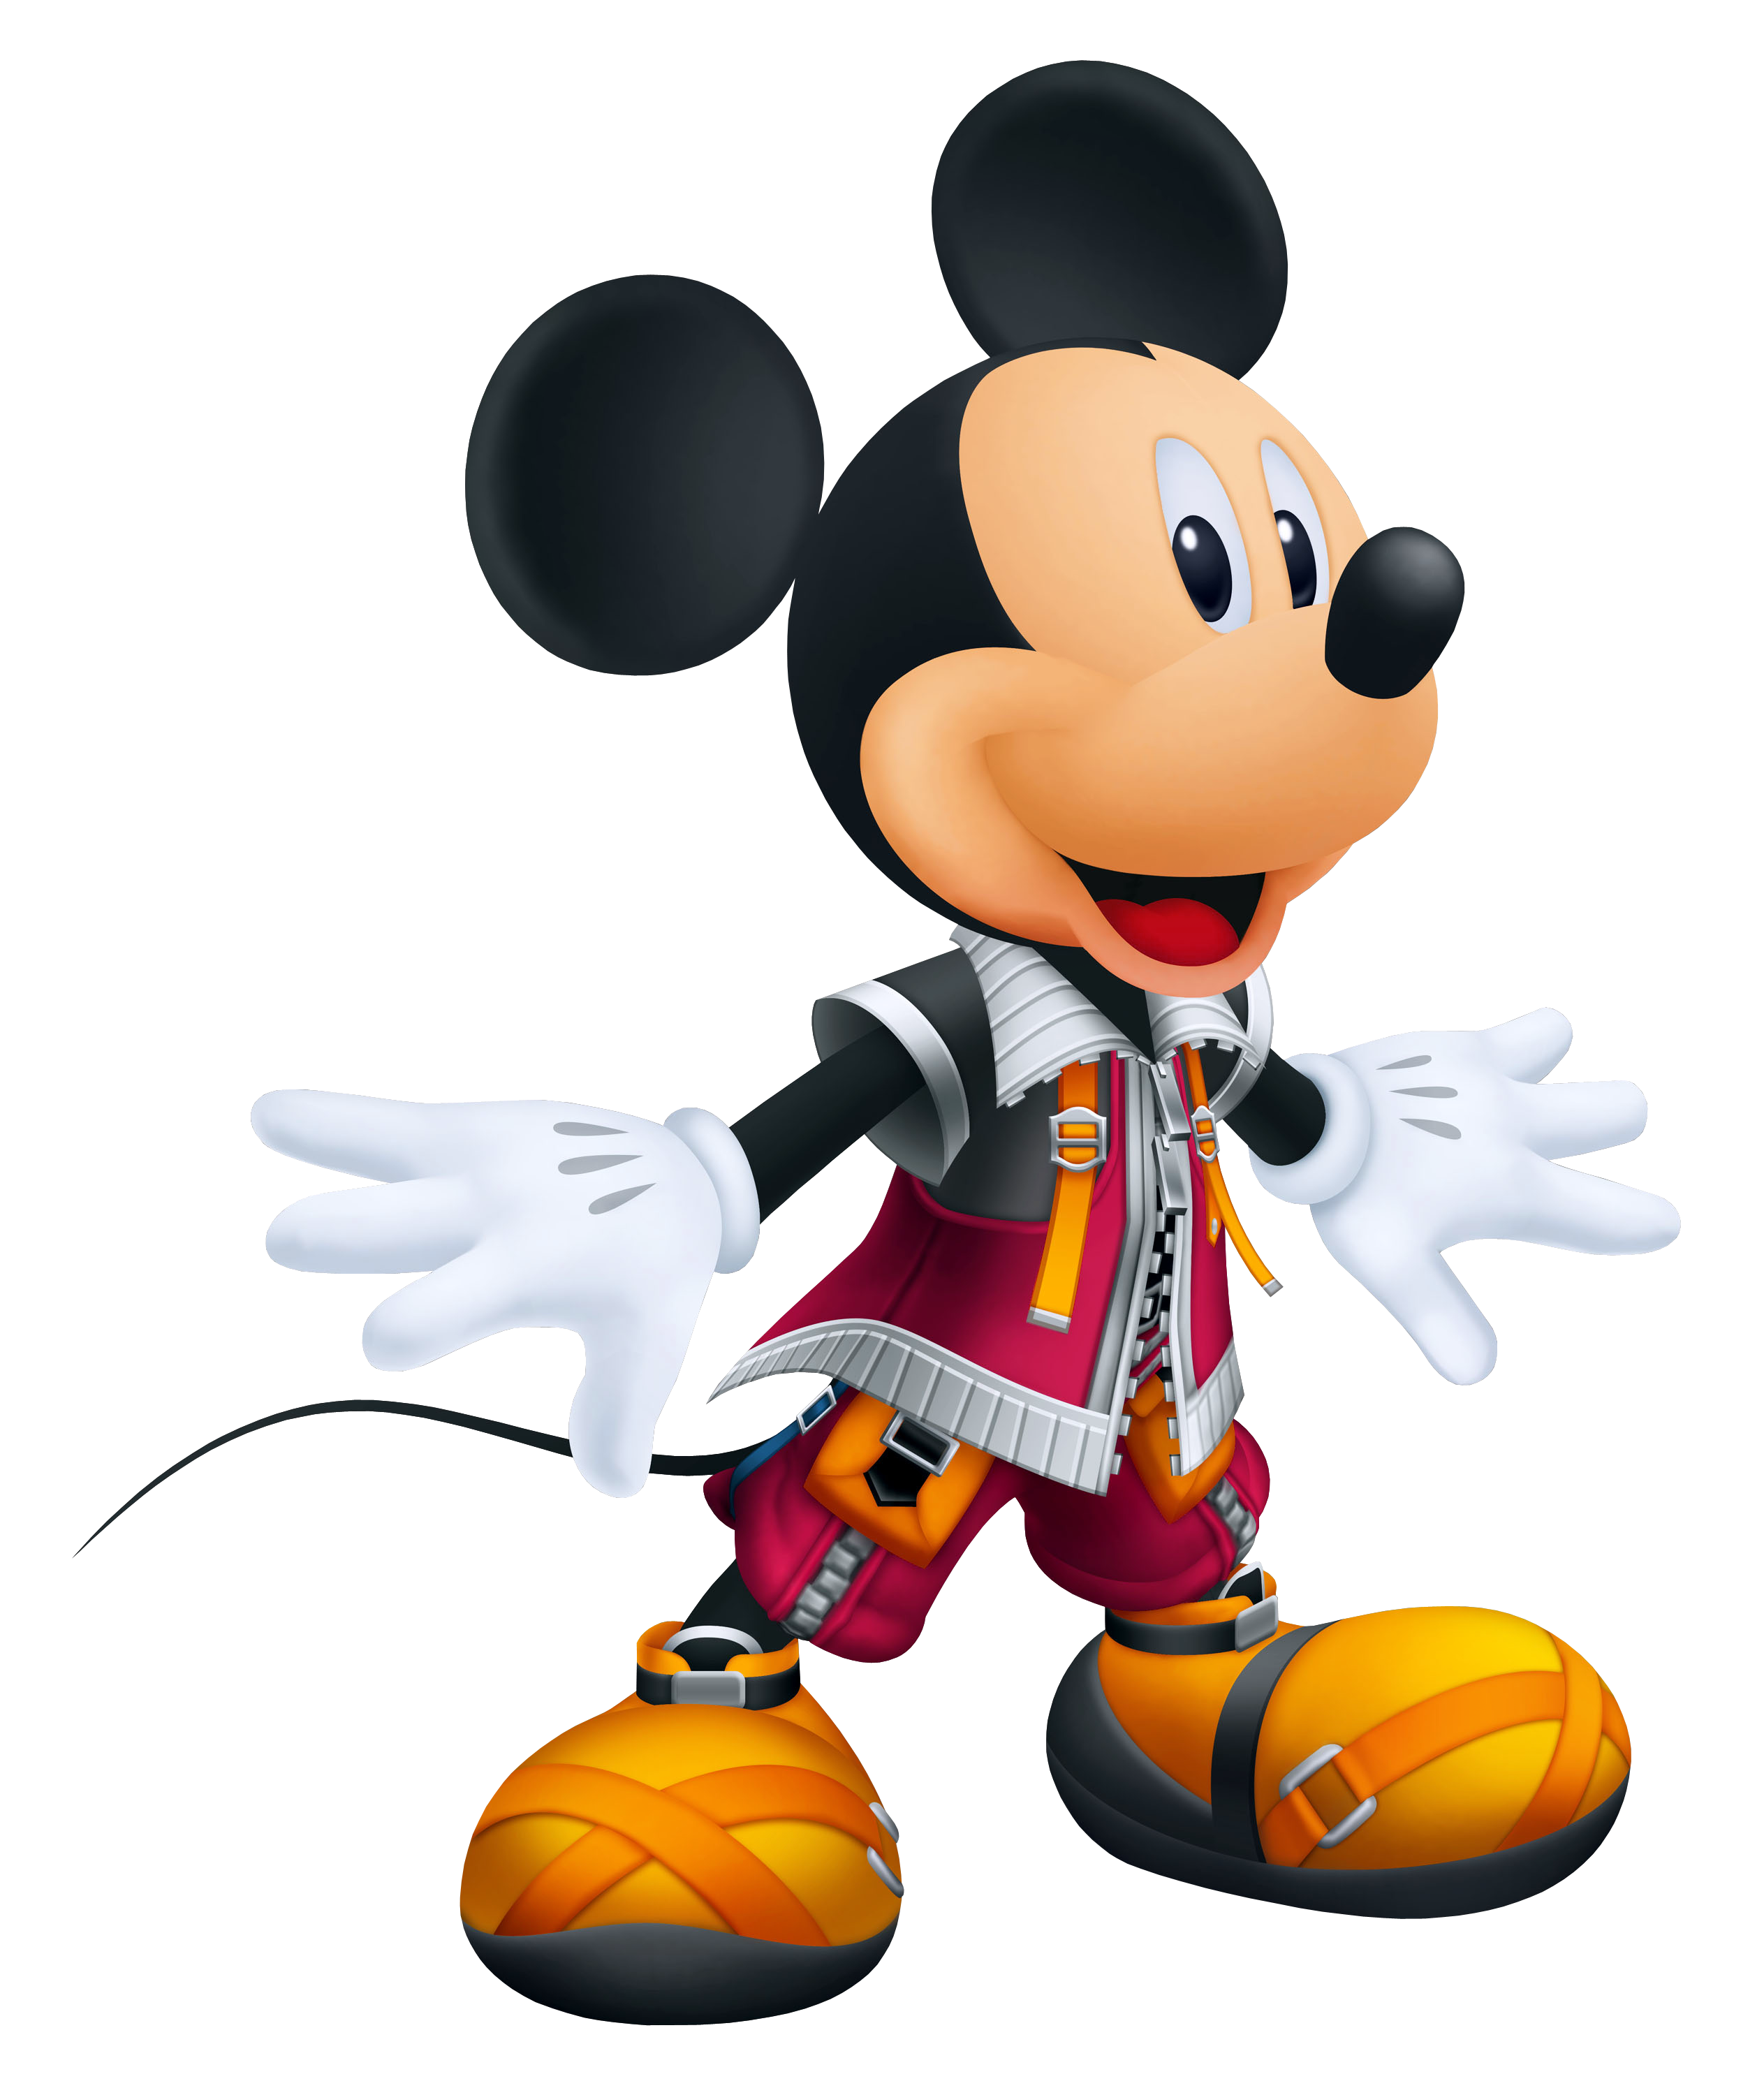 White basketball shorts clipart png freeuse stock King Mickey Mouse PNG Image - PurePNG | Free transparent CC0 PNG ... png freeuse stock